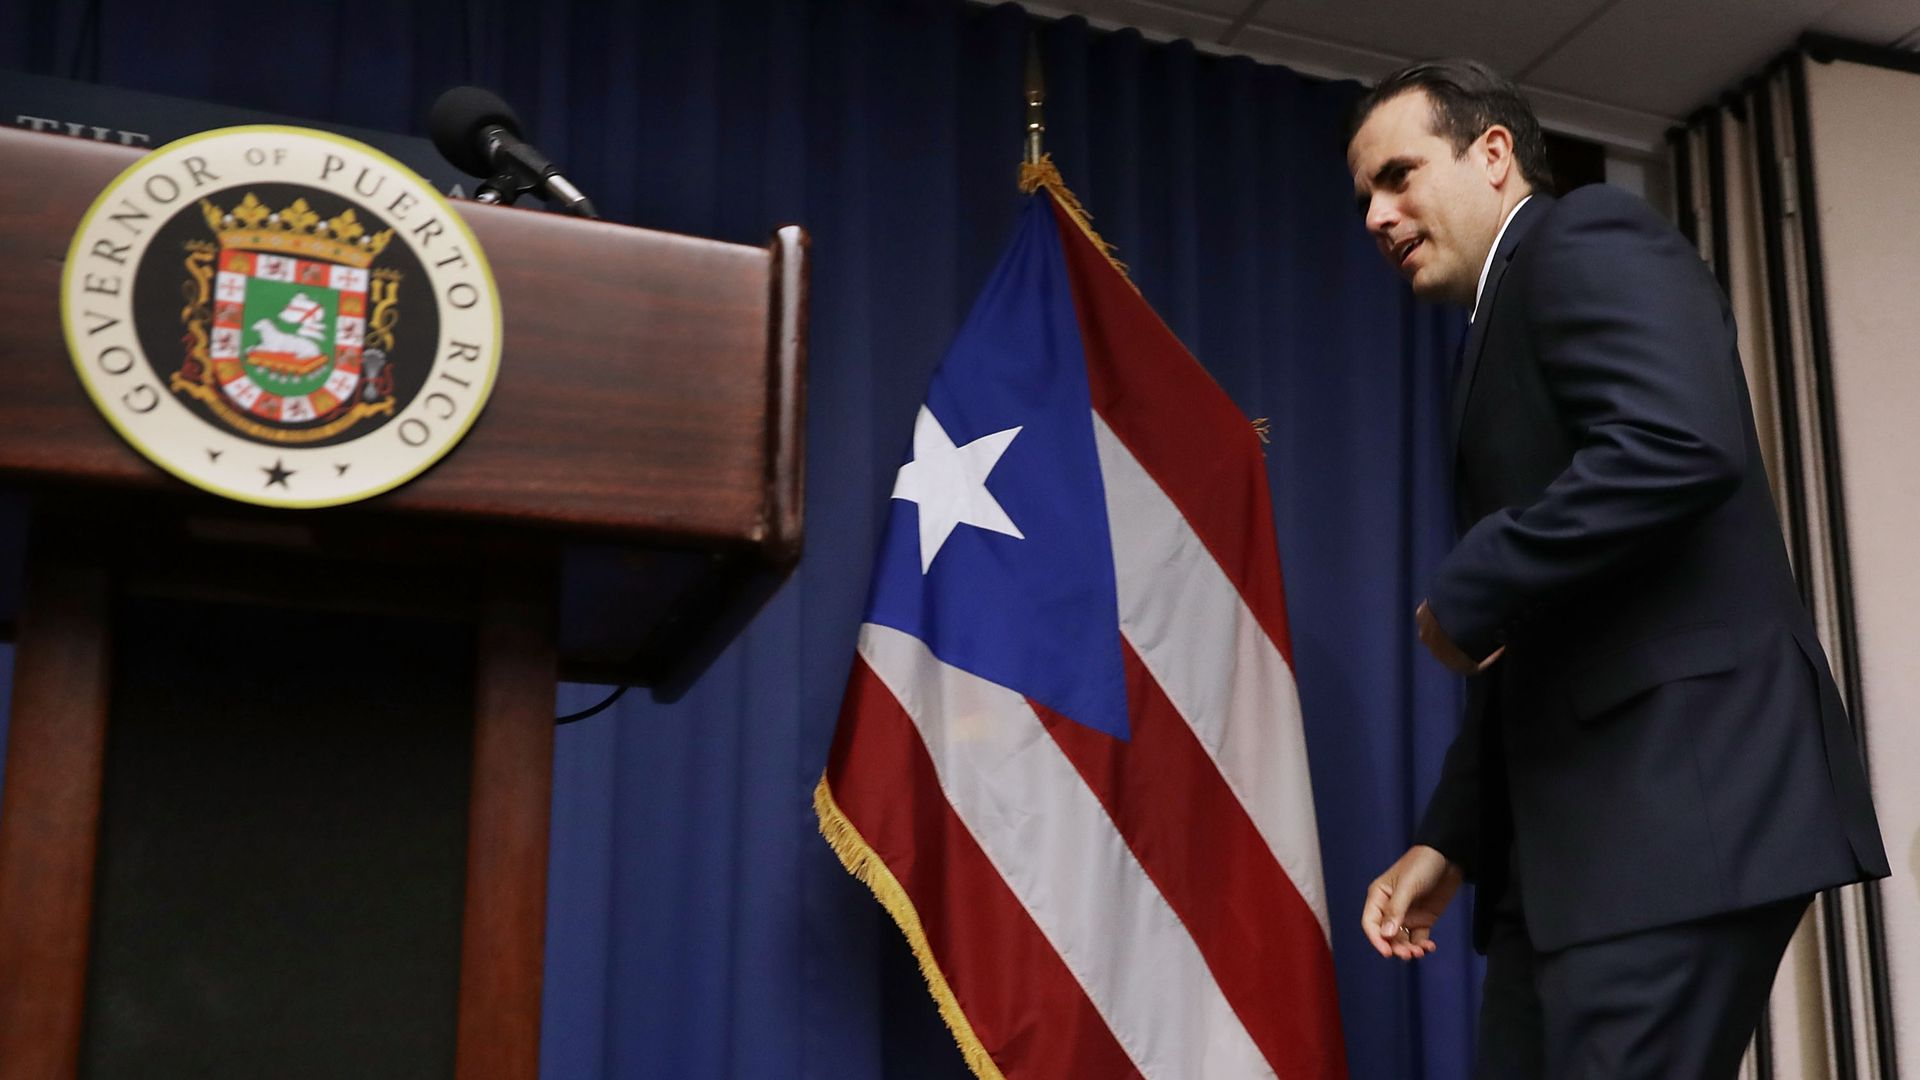 Puerto Rico Gov. Ricardo Rosselló walks up to a podium with the Puerto Rican flag behind him.